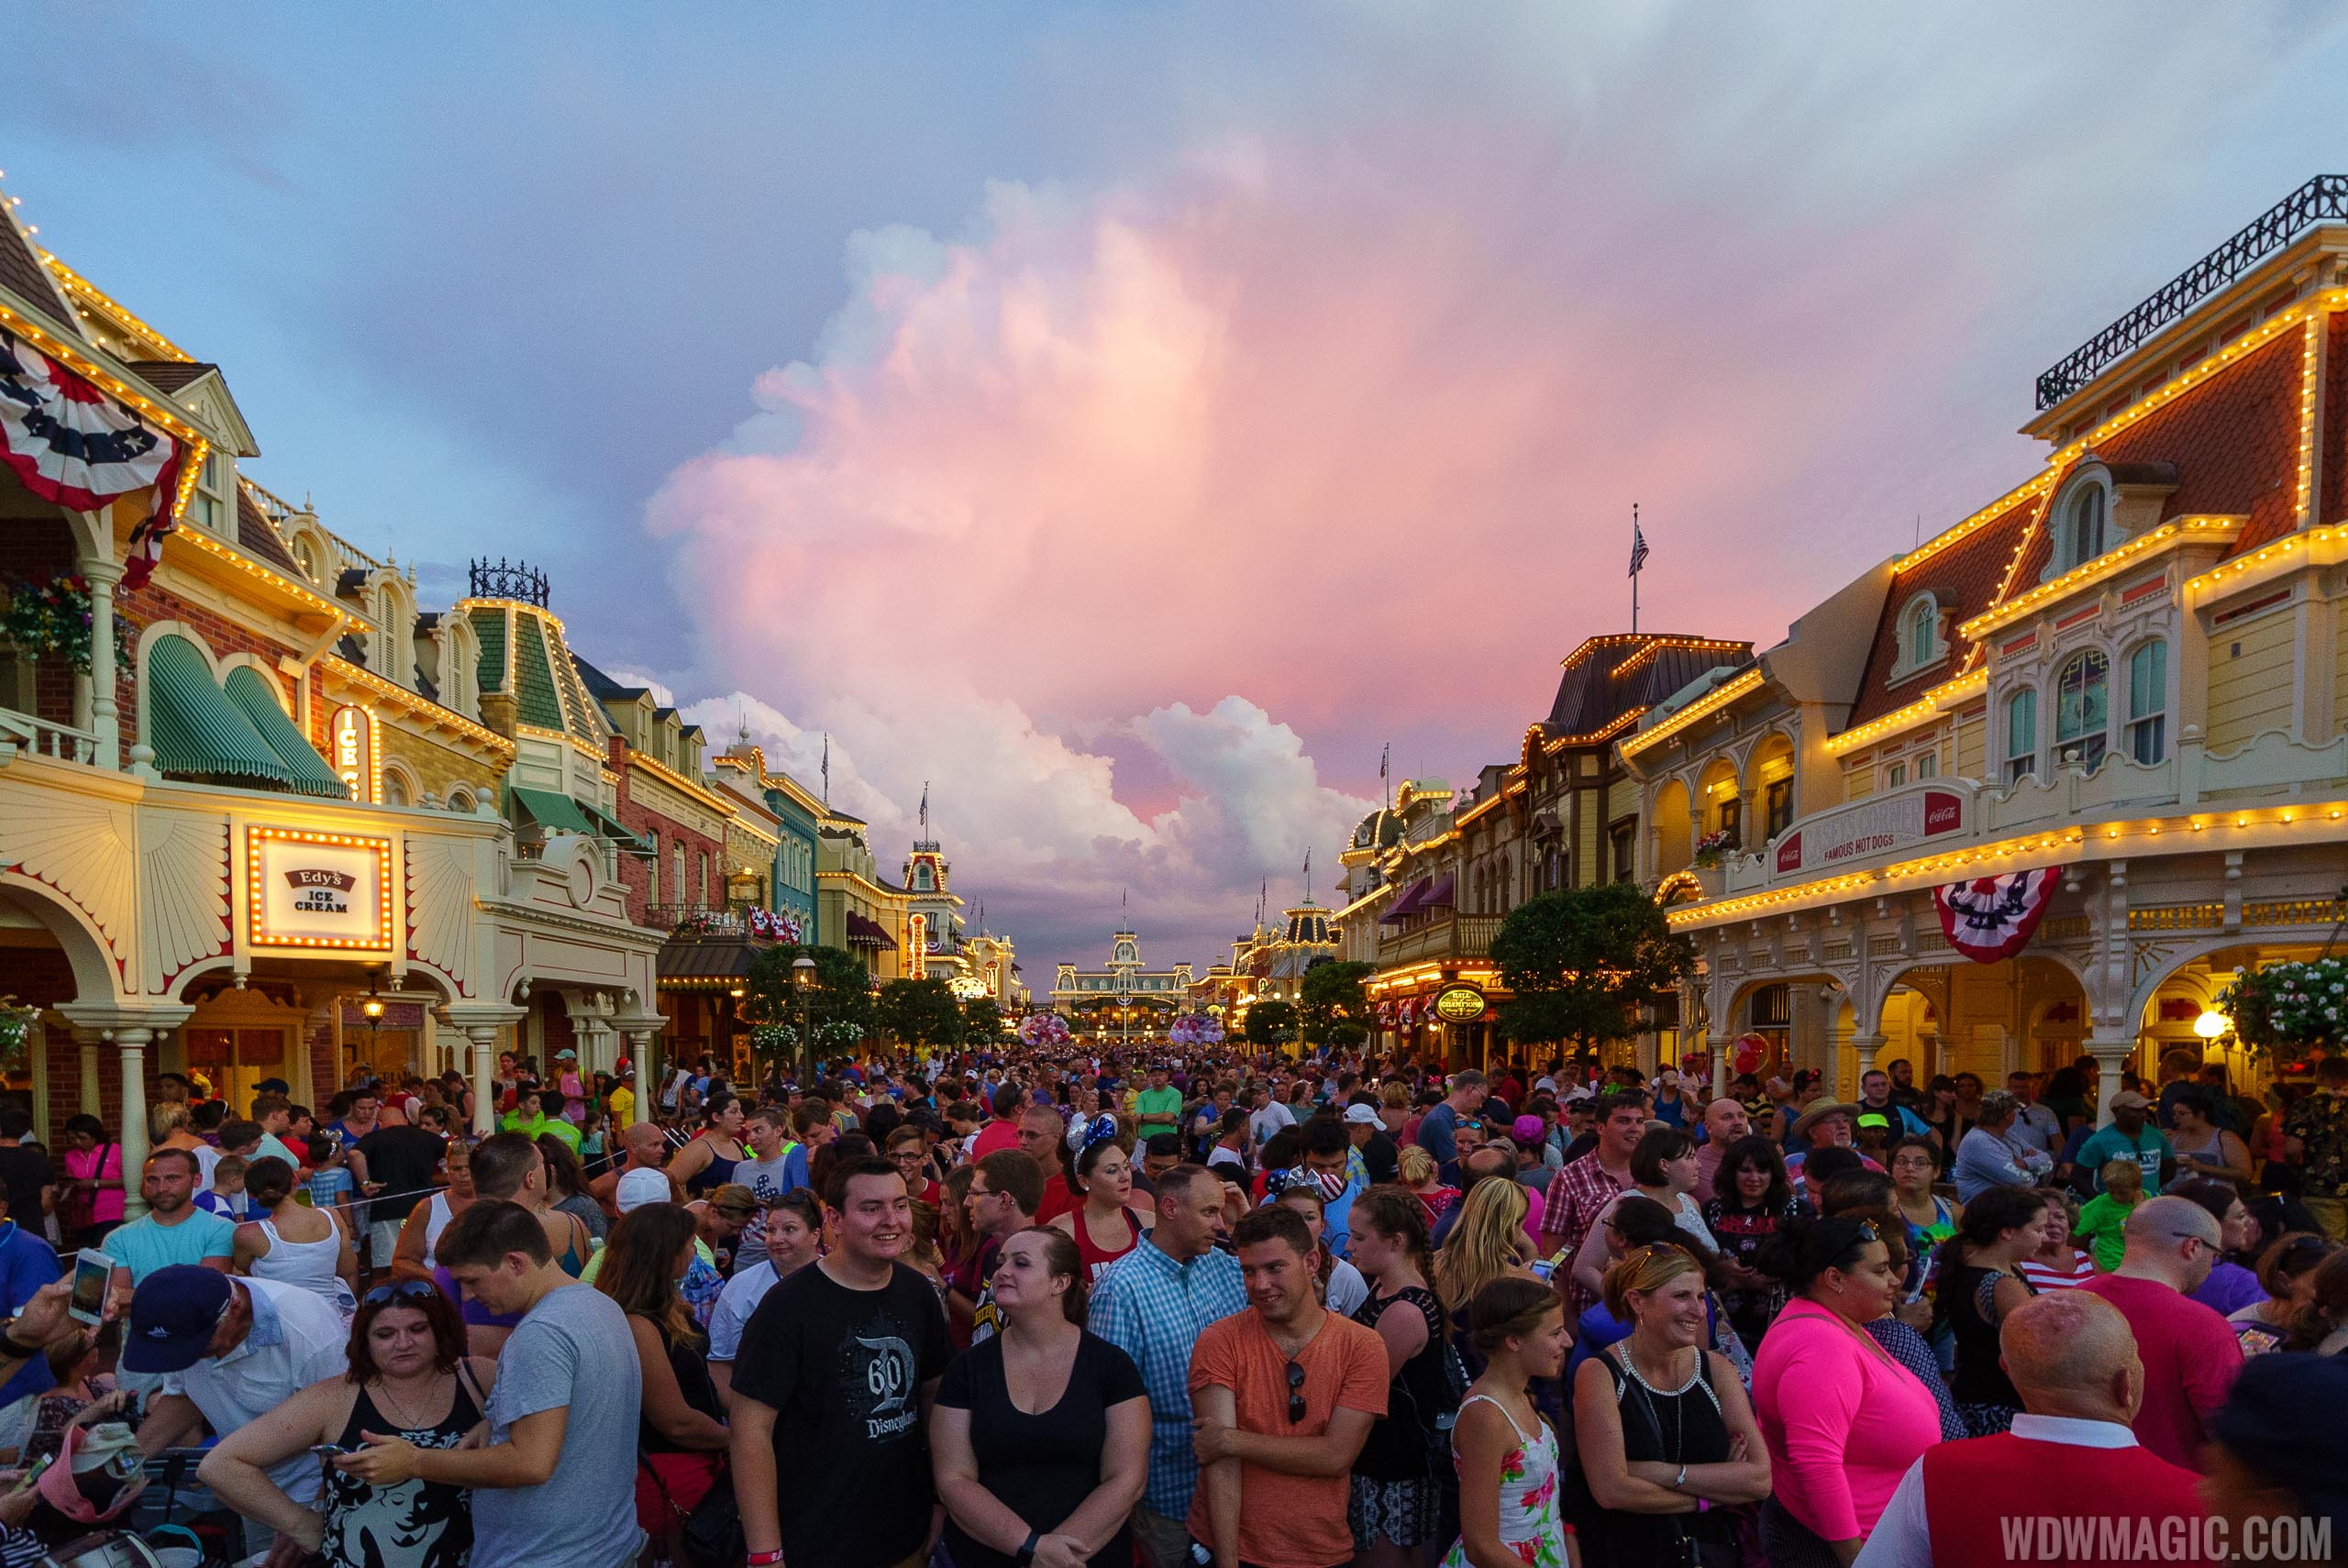 Crowds at the Magic Kingdom